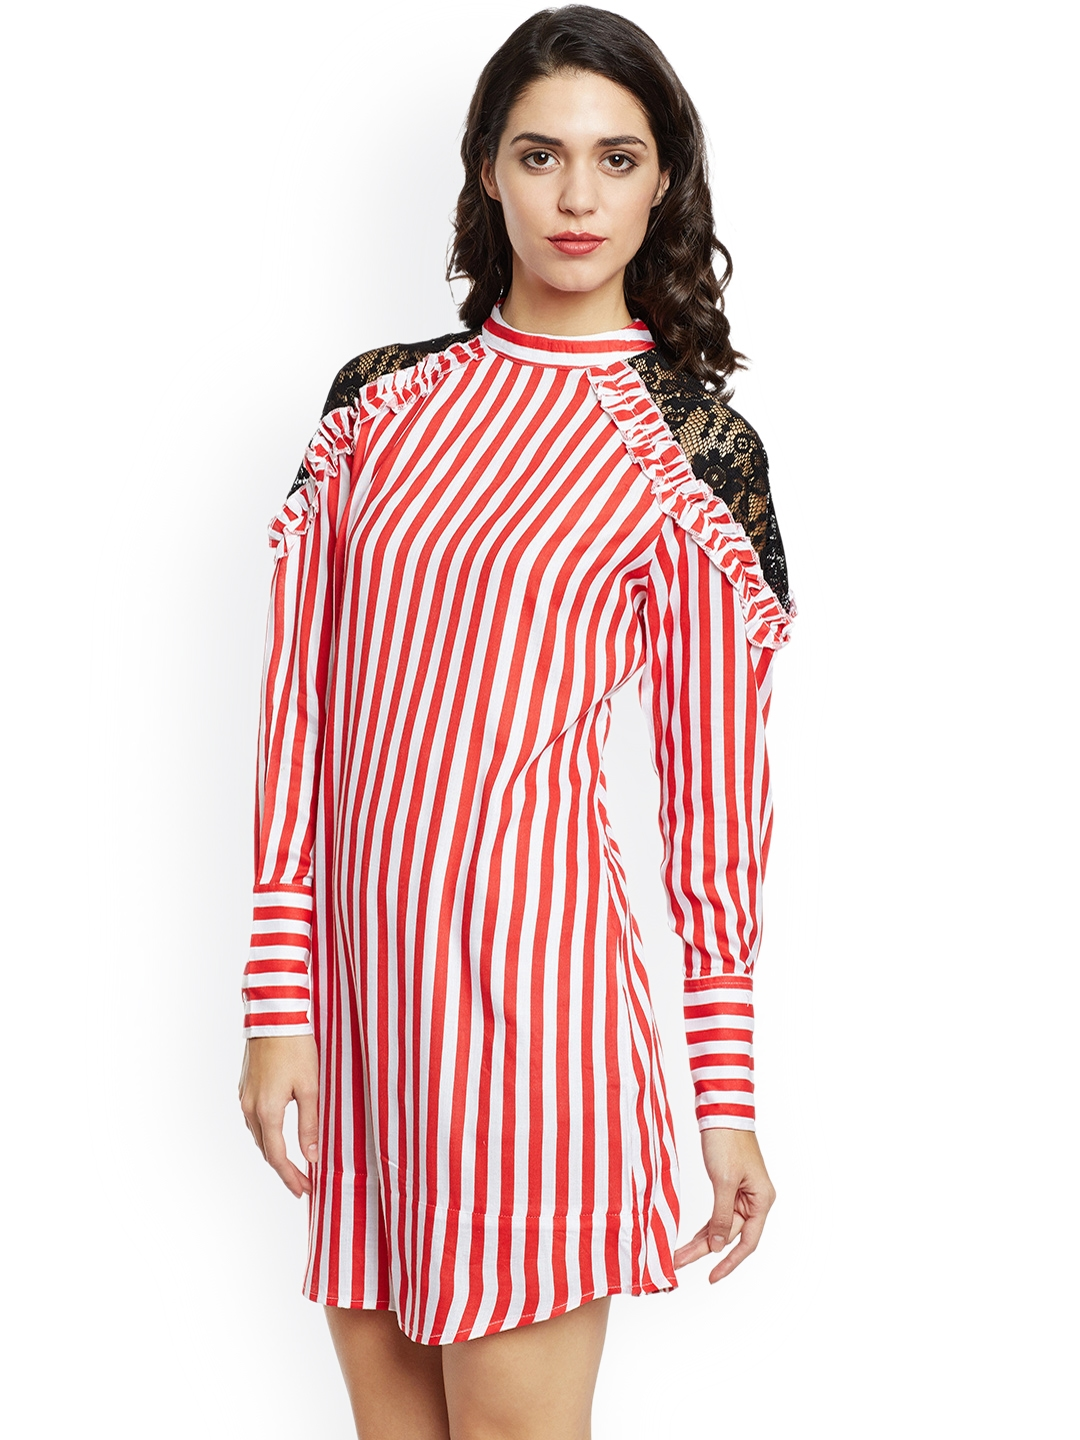 c5e39ba239d5b7 Buy THE SILHOUETTE STORE Women Red   White Striped Shirt Dress ...